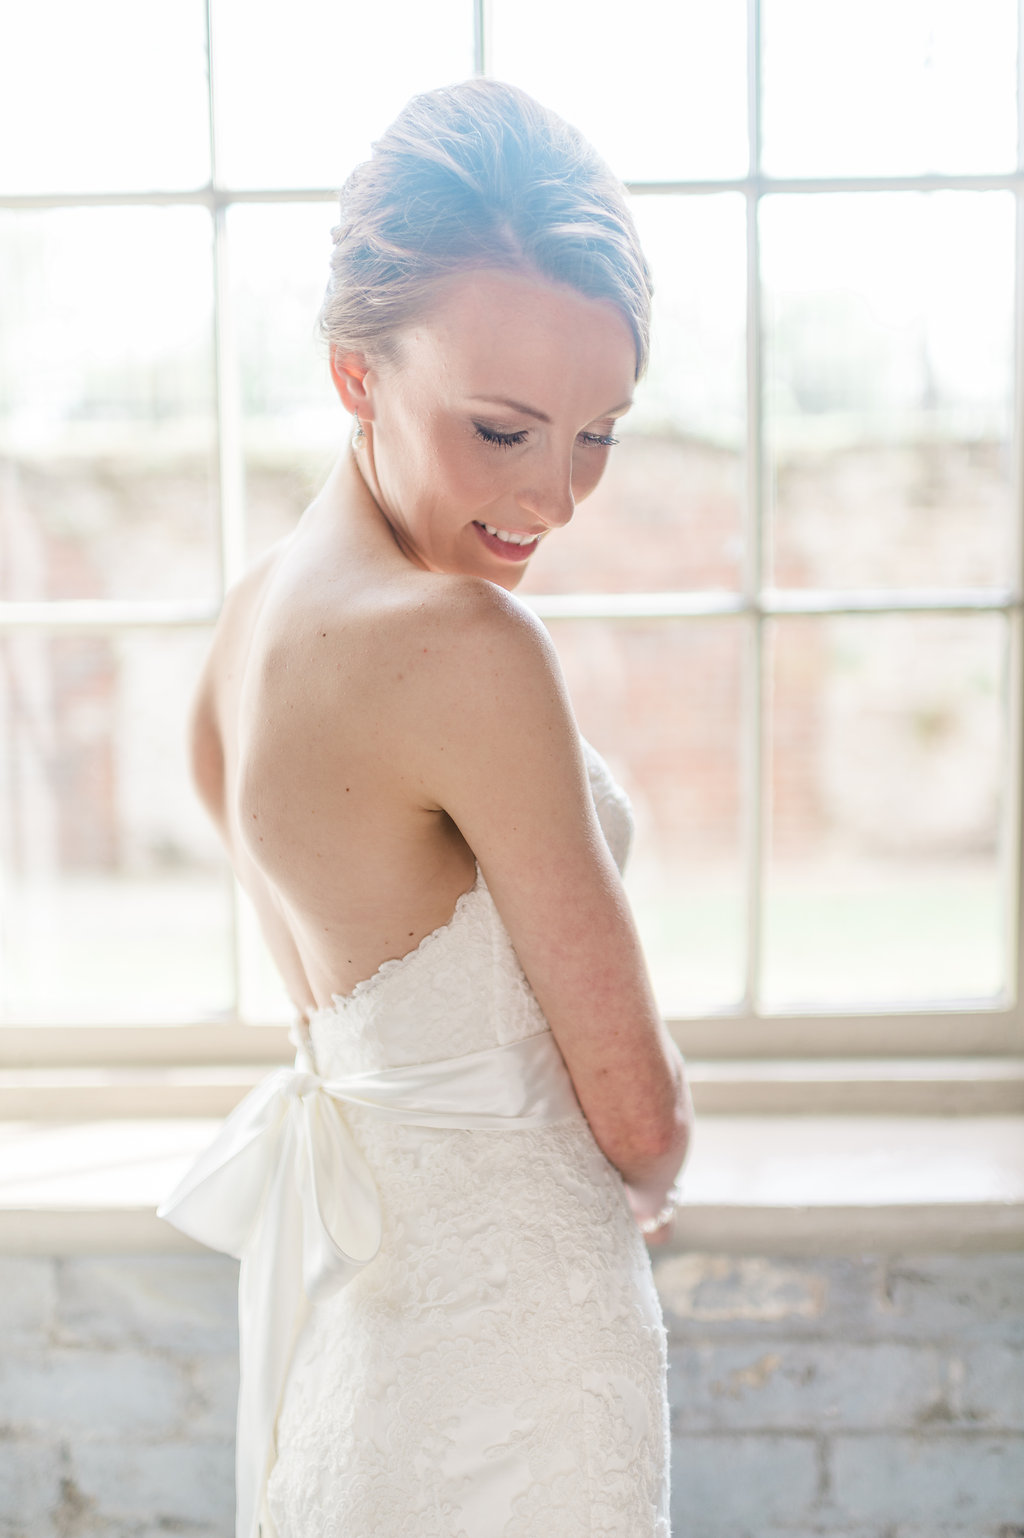 rach-lea-photography-rach-loves-troy-roundhouse-railroad-museum-wedding-ivory-and-beau-savannah-wedding-planner-savannah-weddings-savannah-florist-ivory-and-beau-bridal-boutique-succulent-blush-wedding-7.jpg